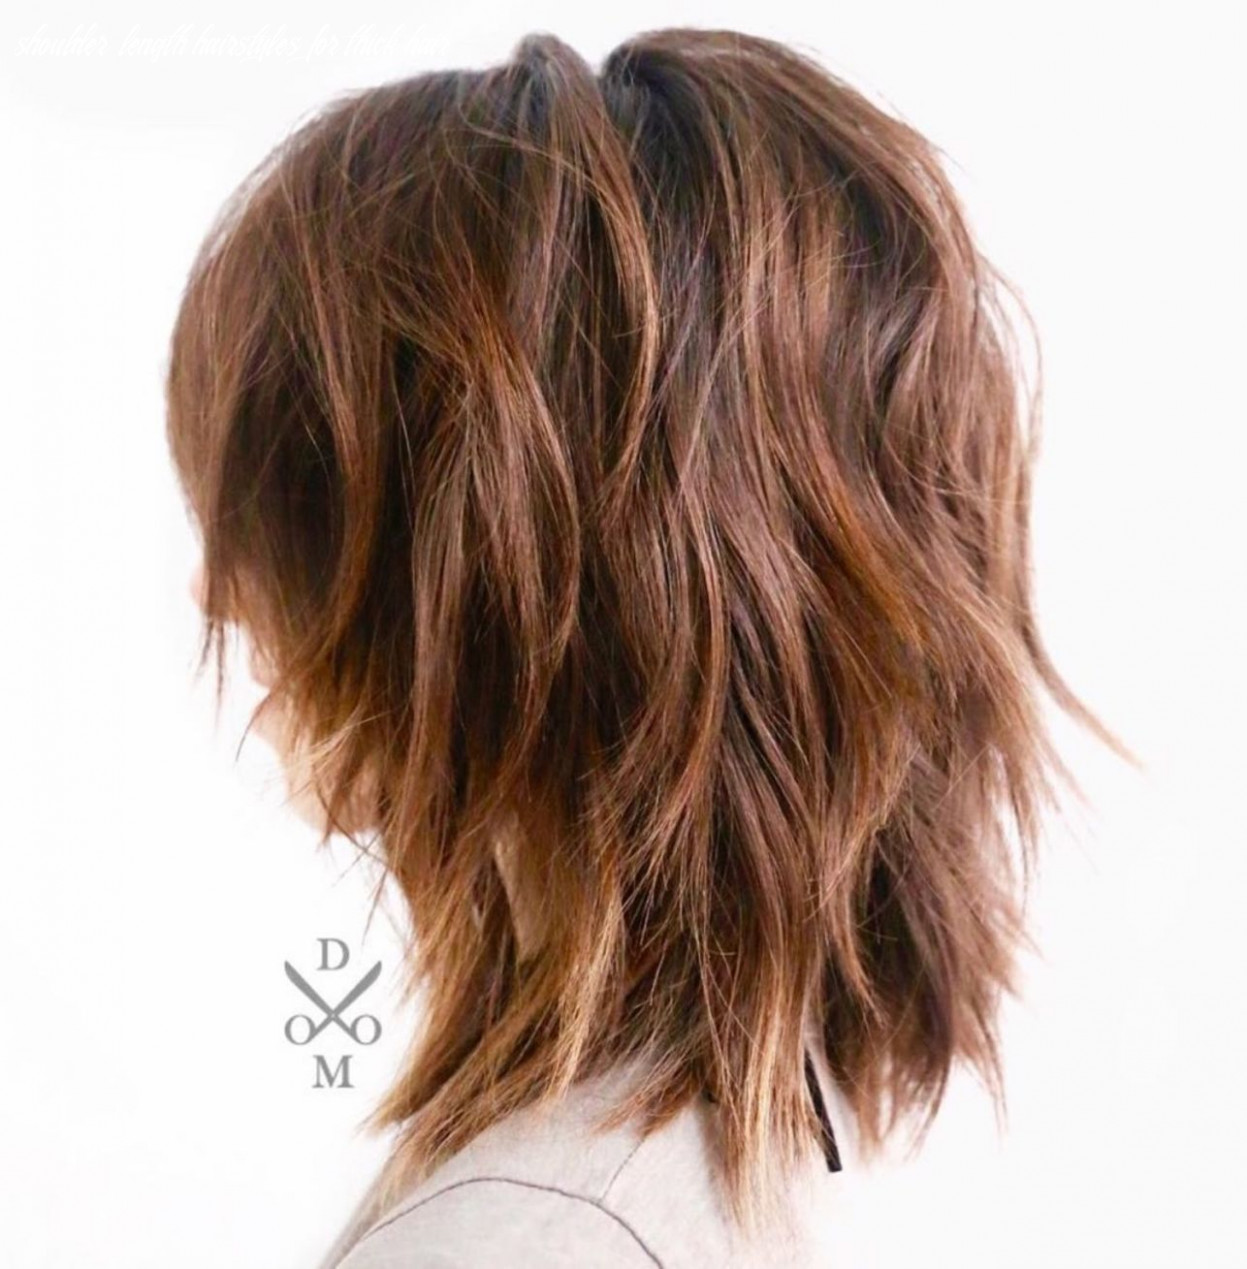 12 most beneficial haircuts for thick hair of any length | thick